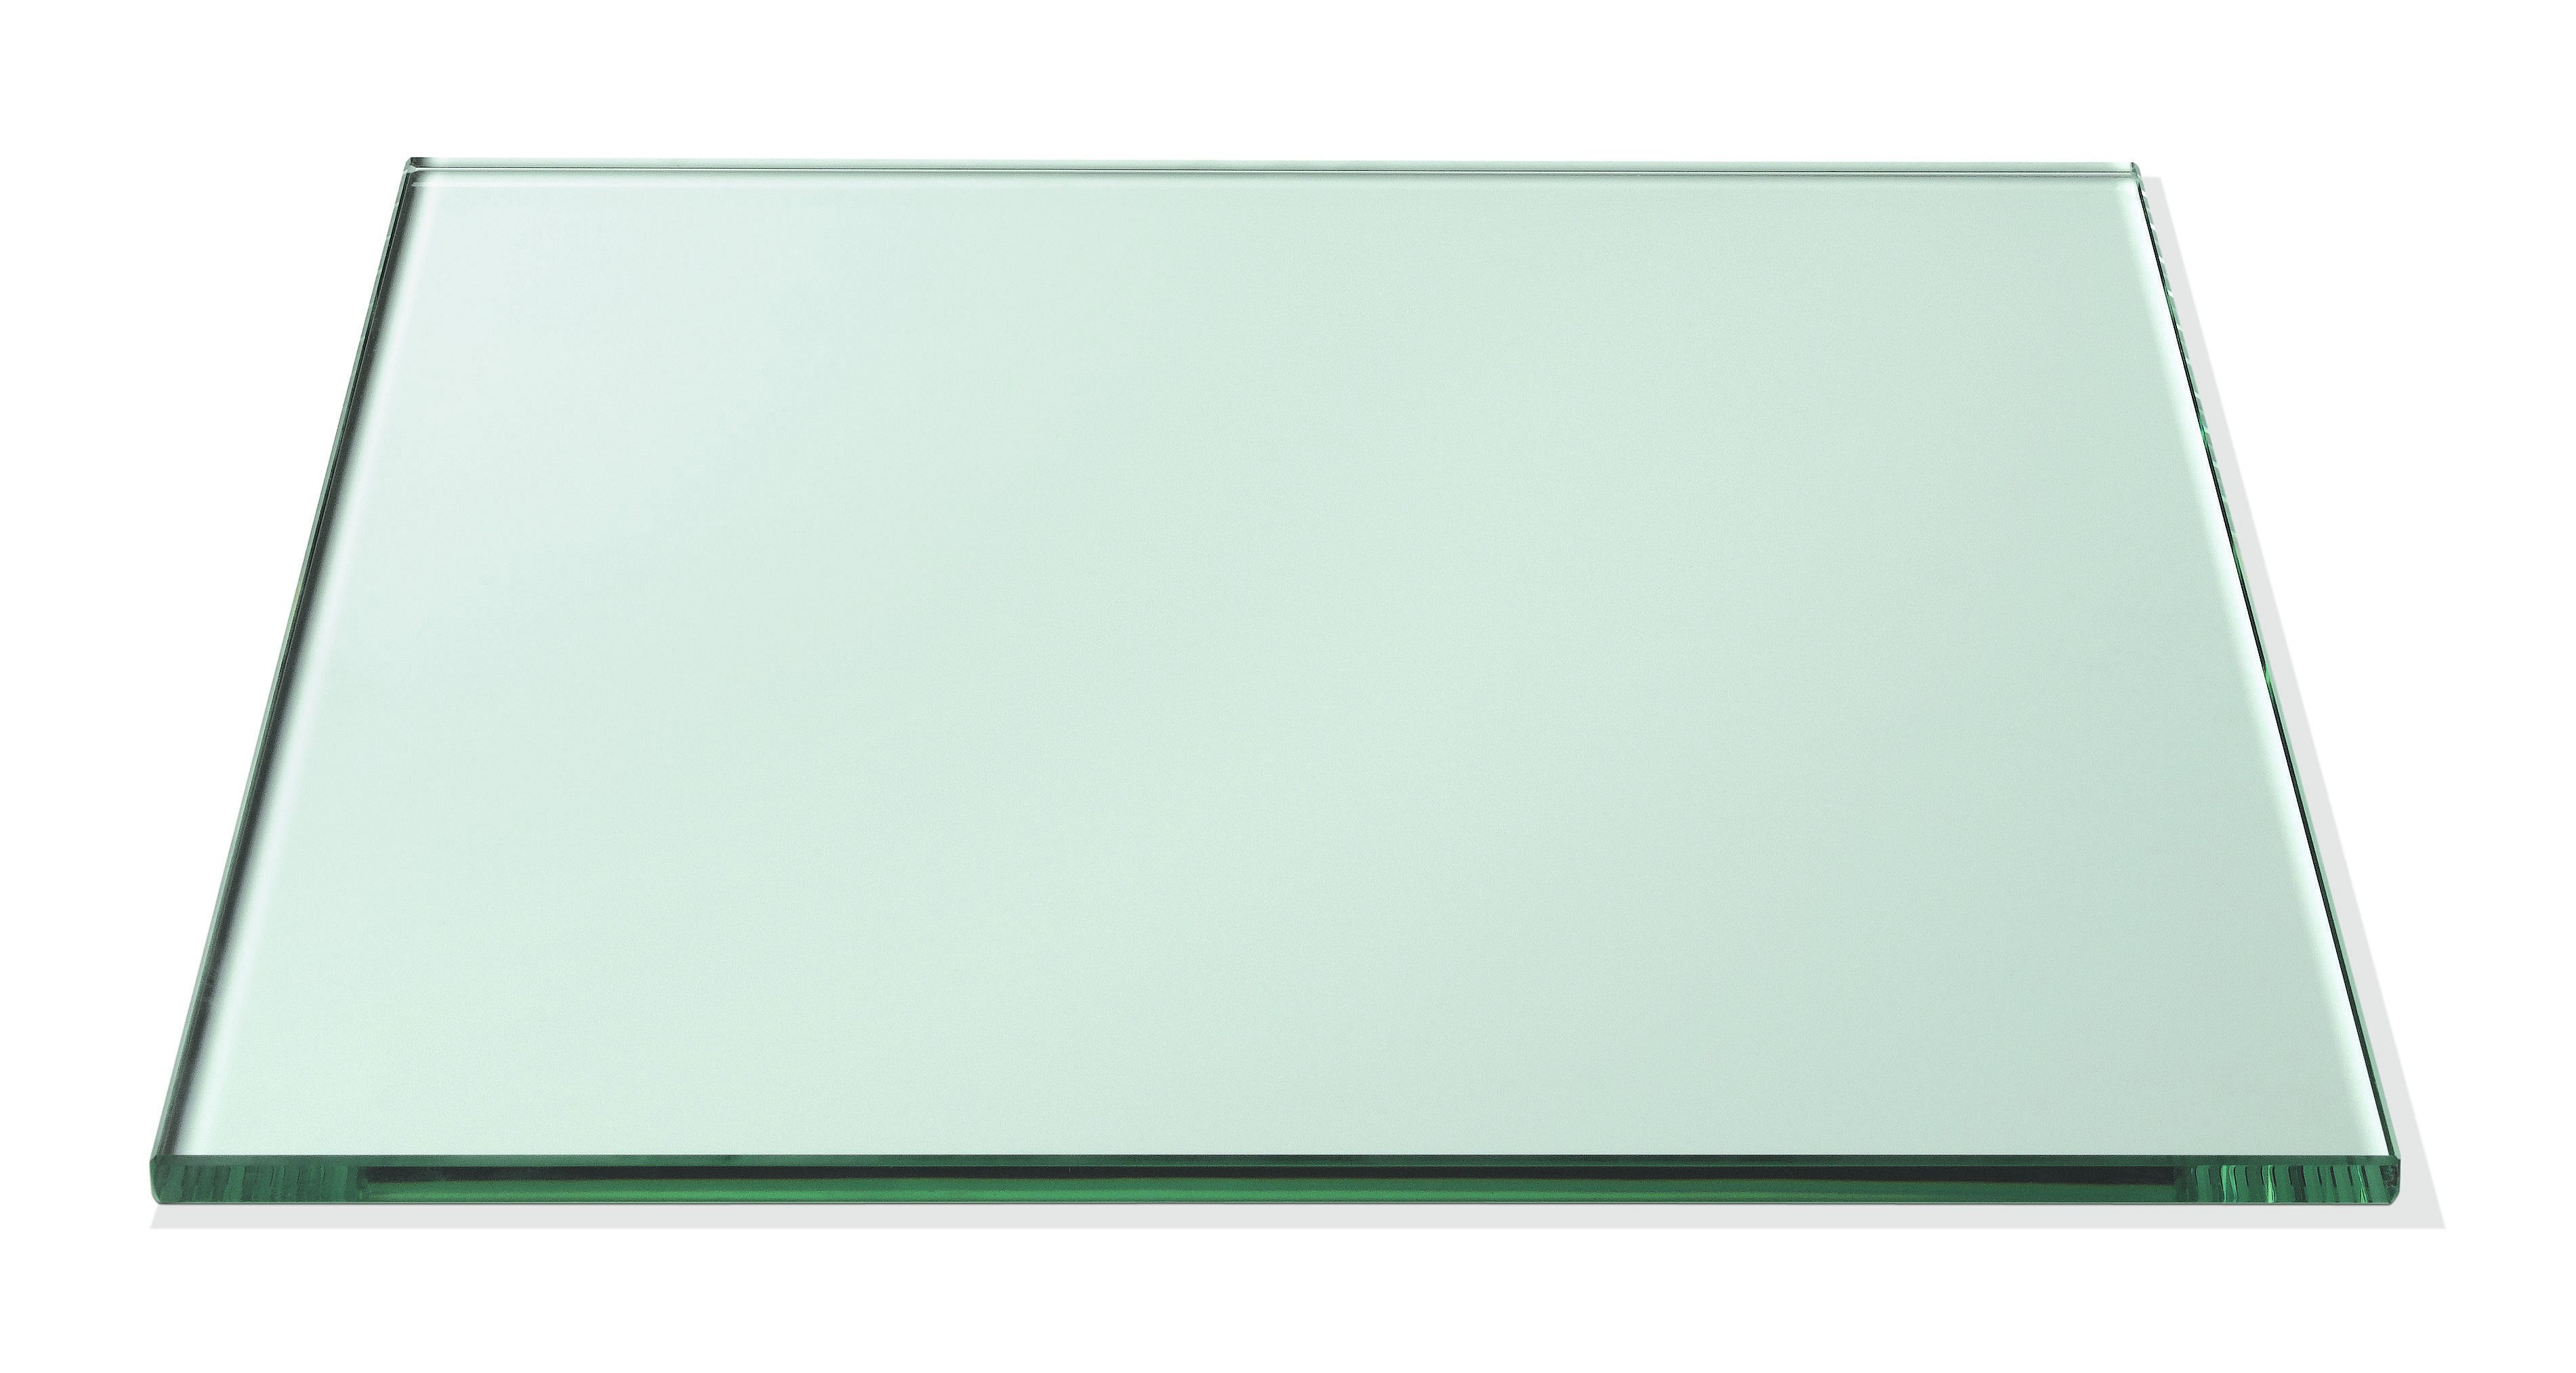 Square Display Surface Clear Acrylic - 14